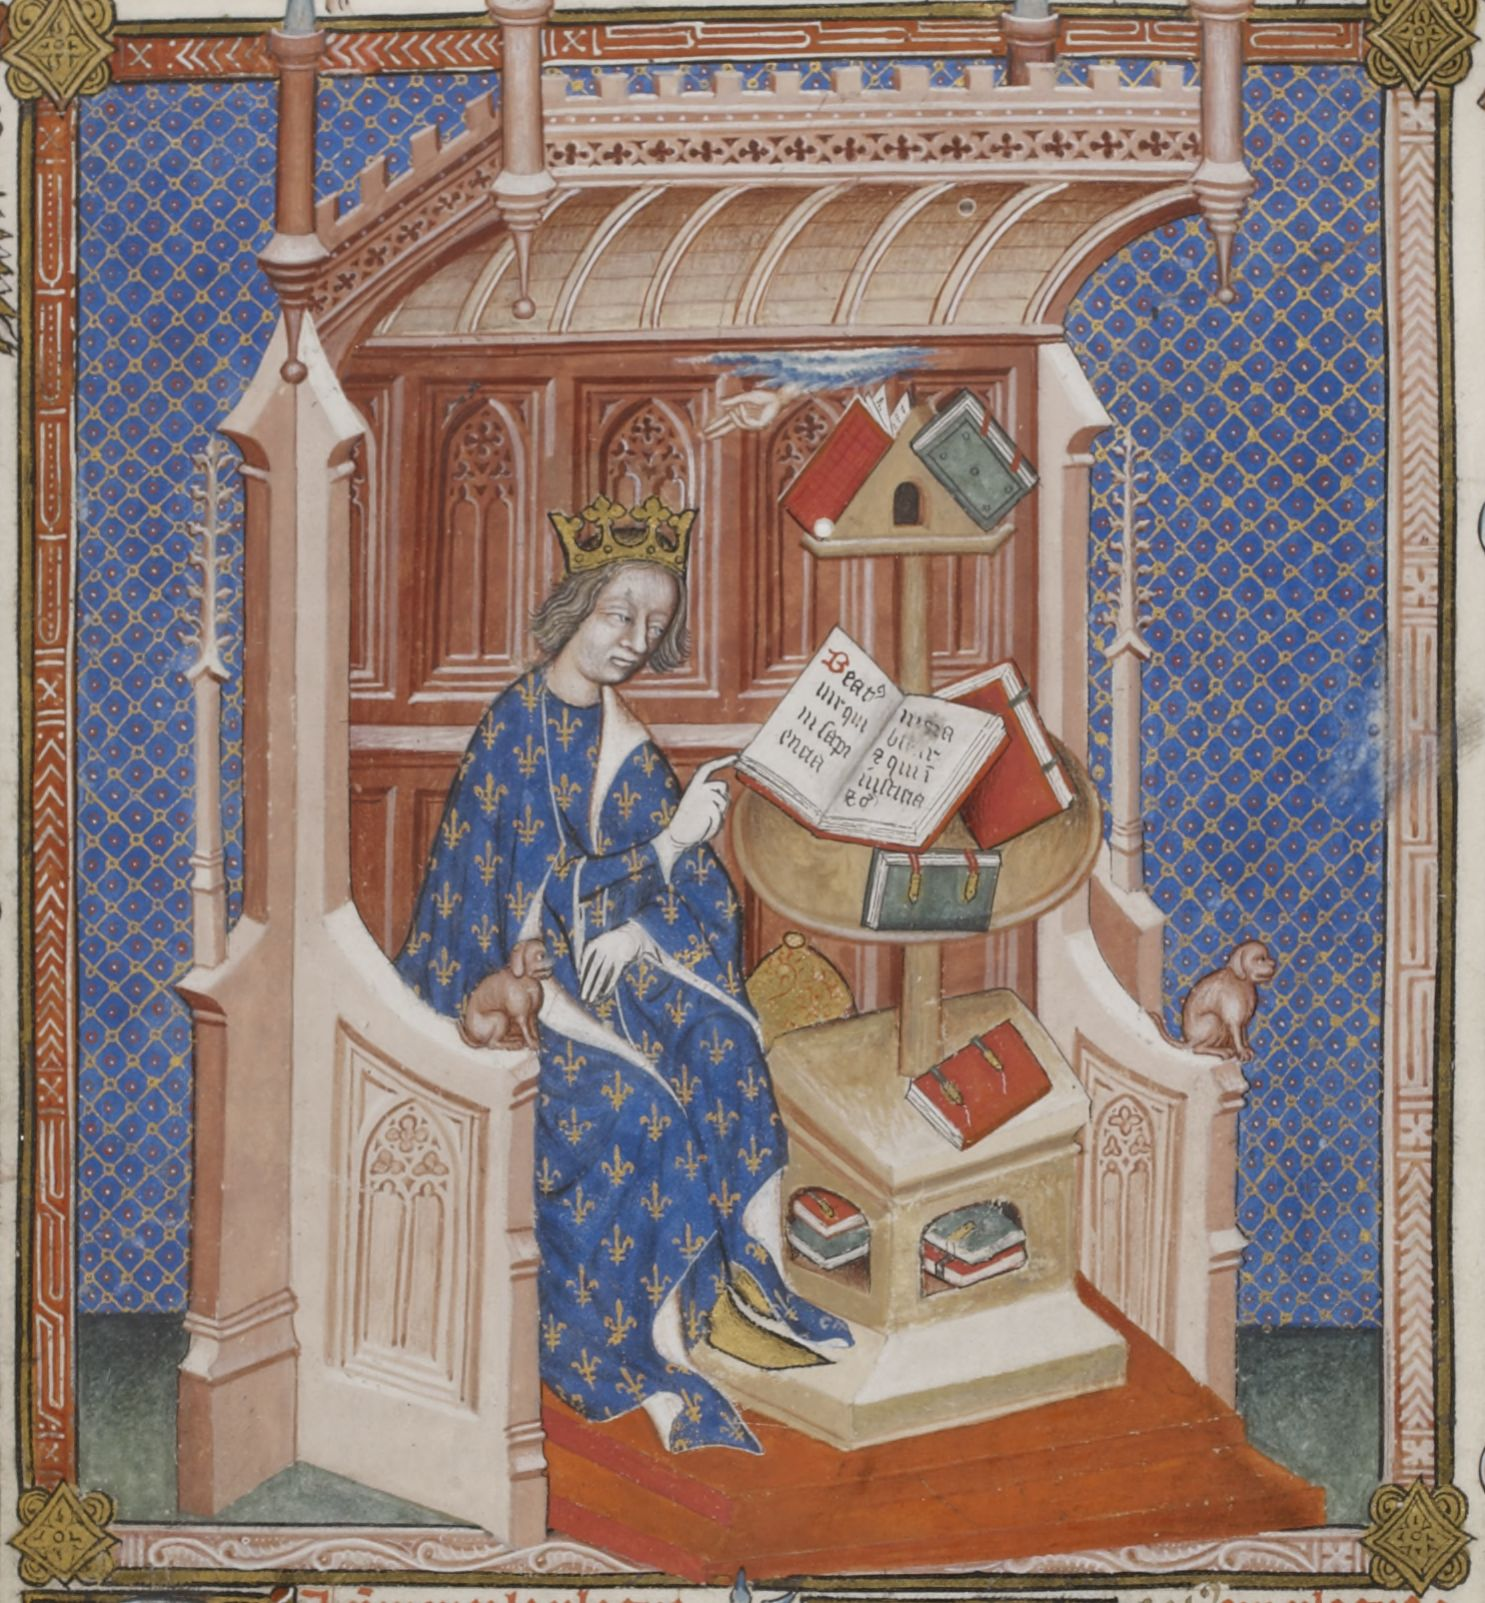 Illuminated Medieval Manuscript. Illumination. Charles V. Books. Books in the Middle Ages. Reading. Reading in the Middle Ages. King of France. Semy-de-Lys. Fleur-de-Lys. King. Heraldry. Bible. Song of Songs.